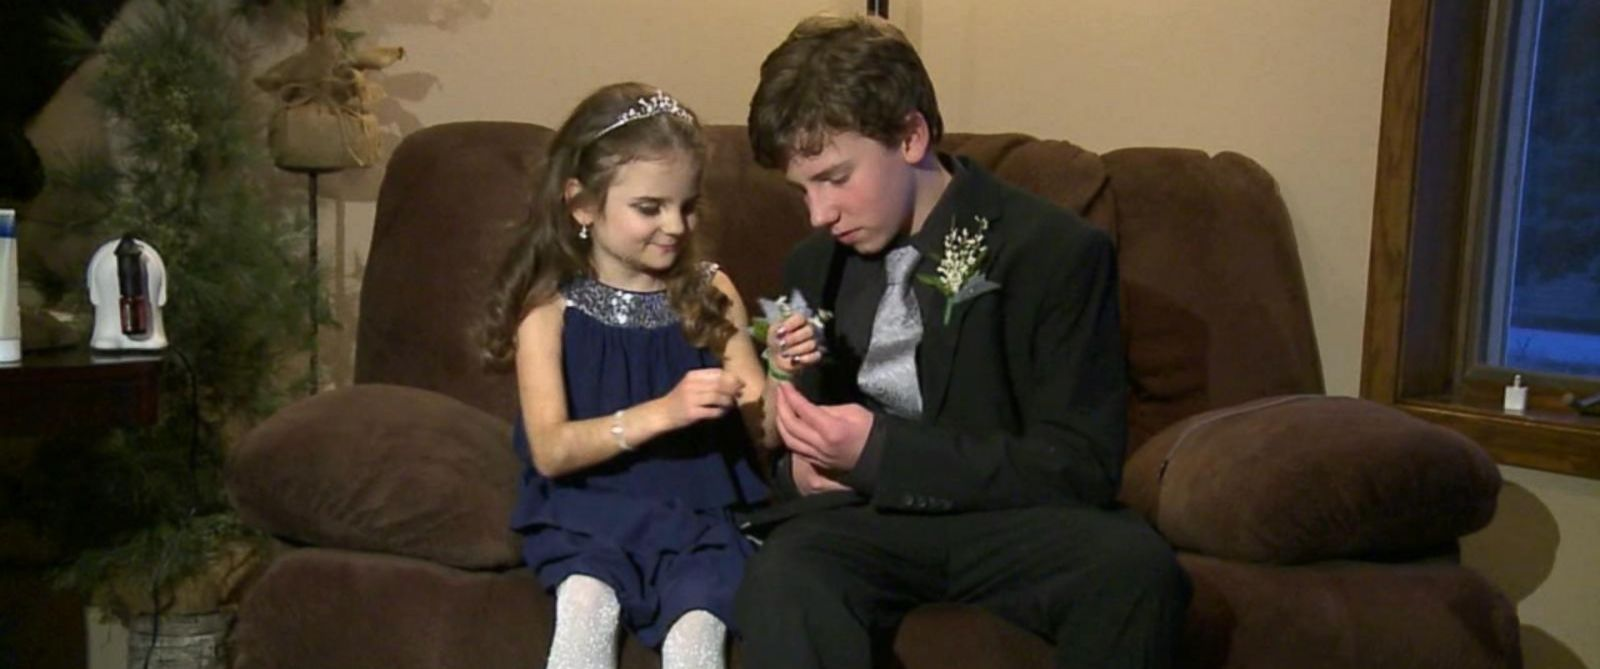 PHOTO: AJ Spader took his sister to his first high school formal so that she could have the experience of going to a high school dance.